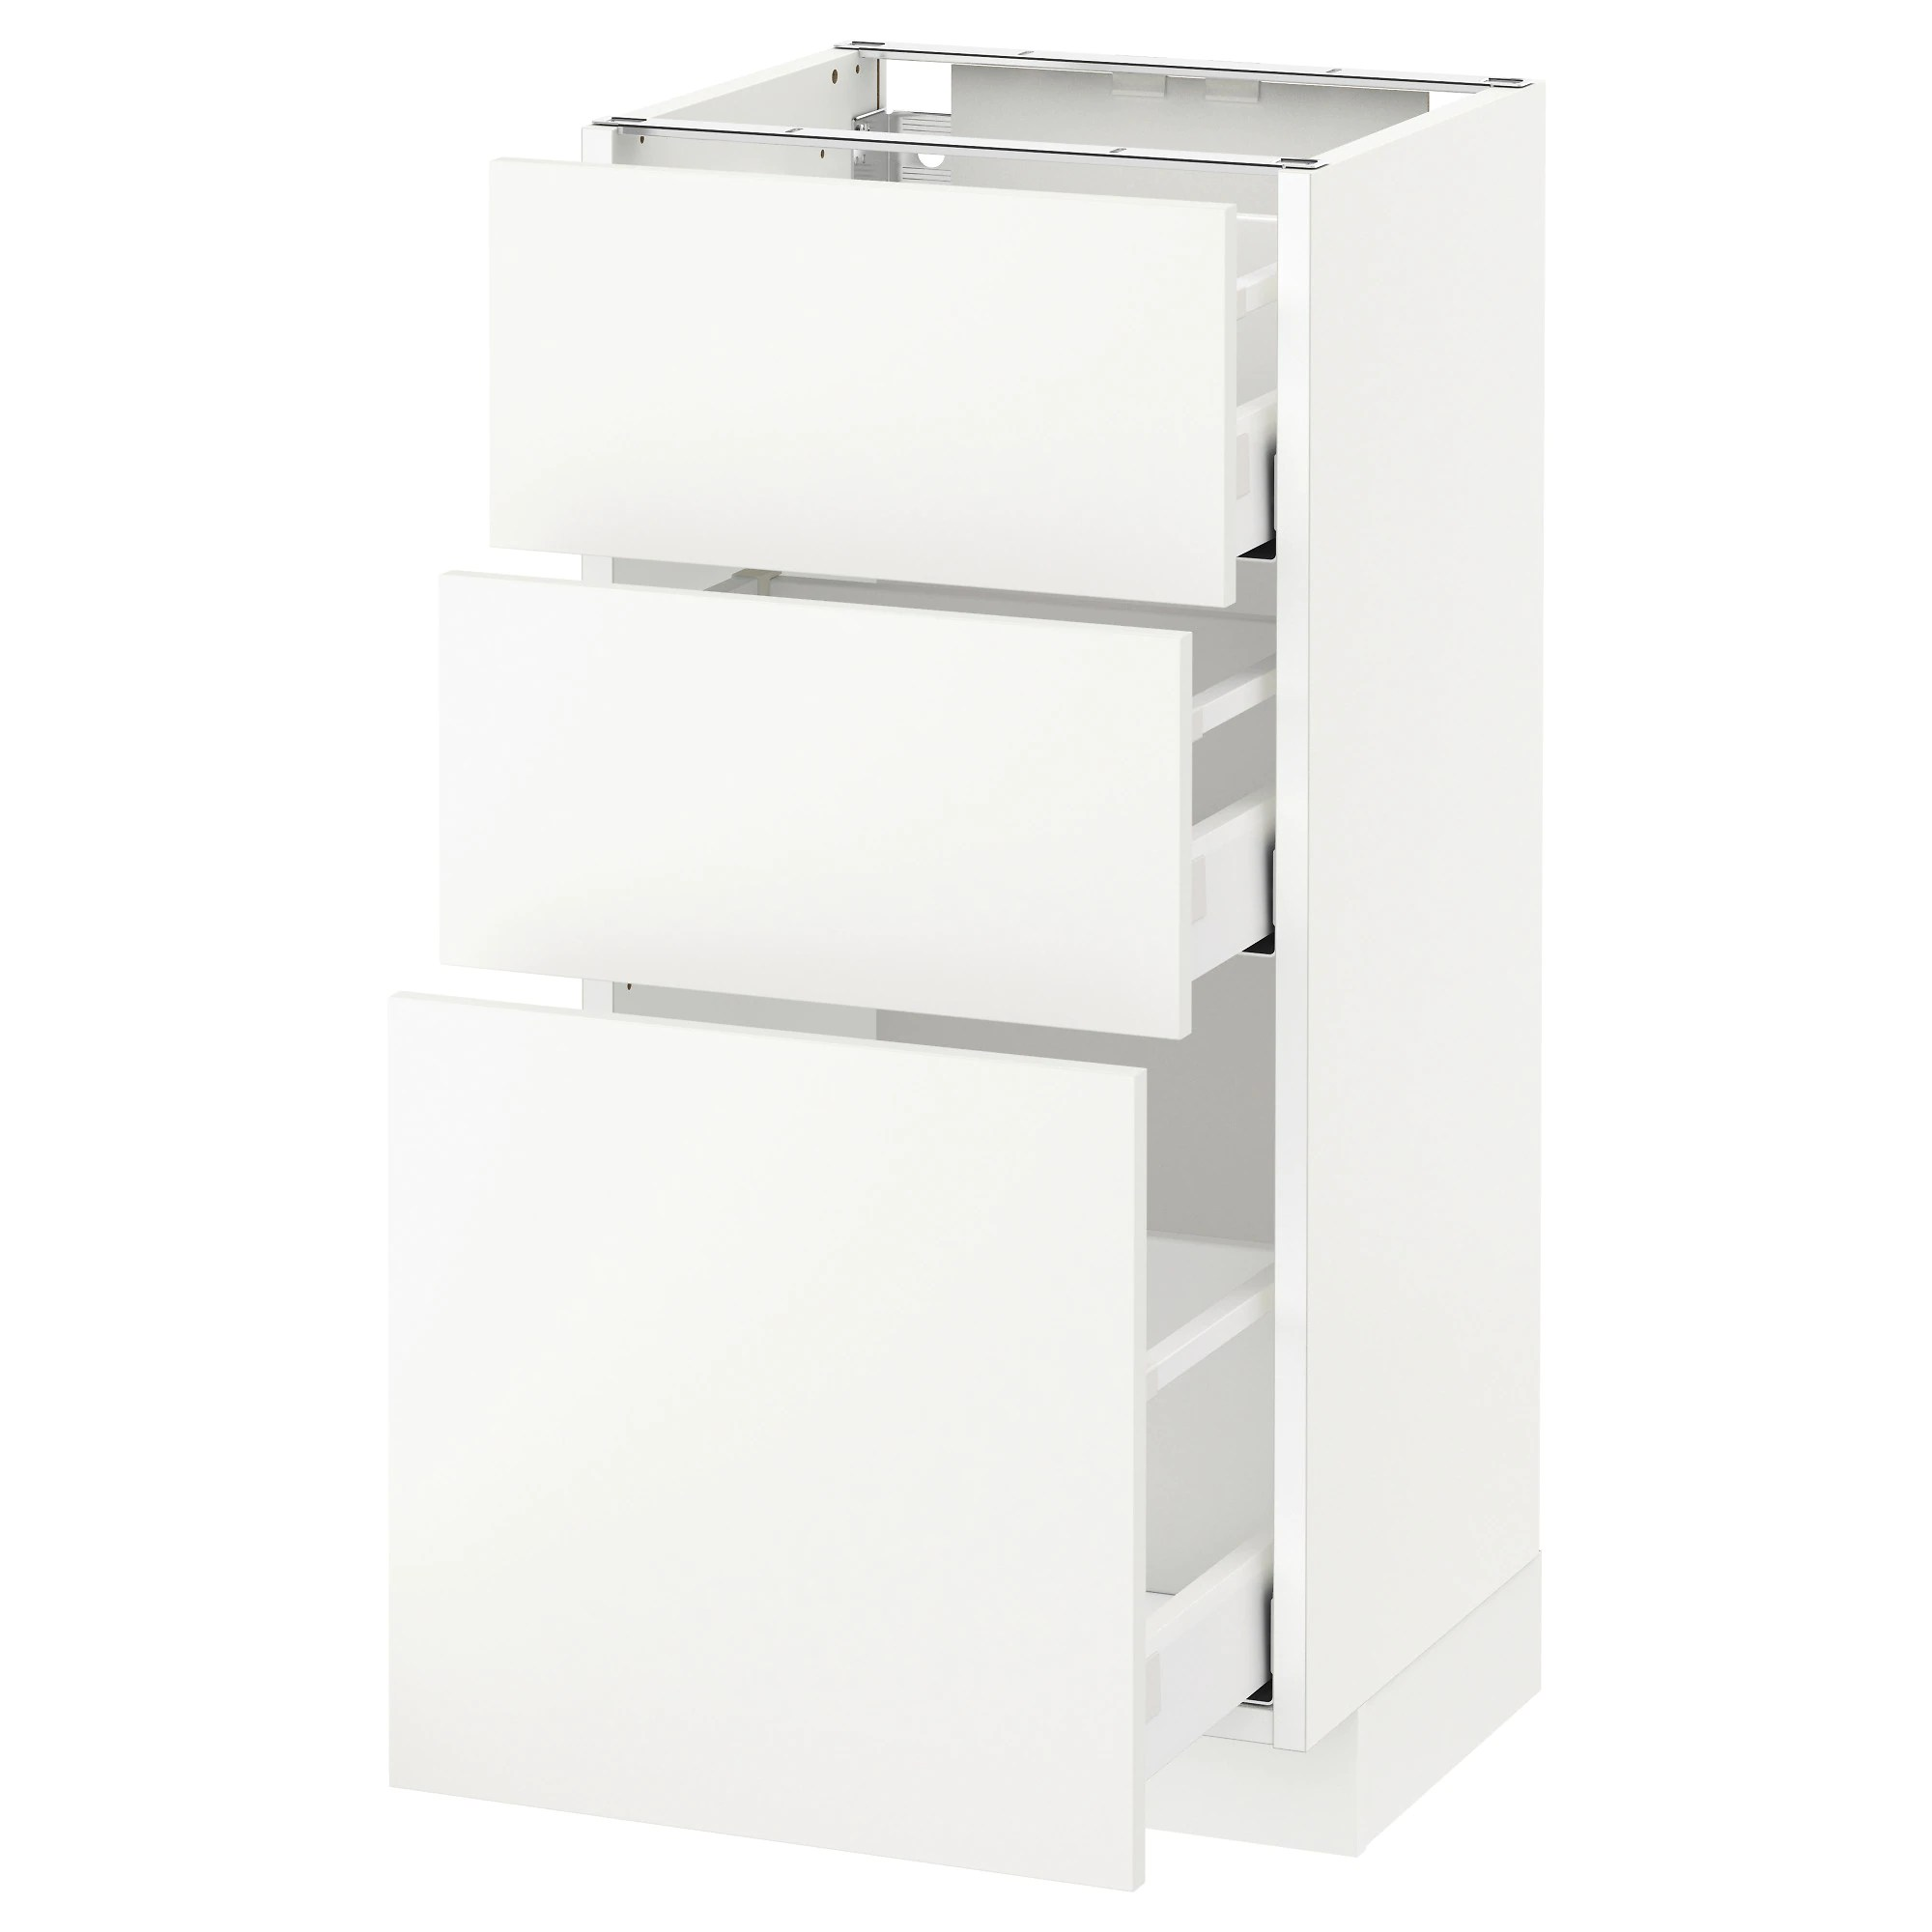 Küche Ikea Häggeby Metod Maximera Base Cabinet With 3 Drawers White Häggeby White